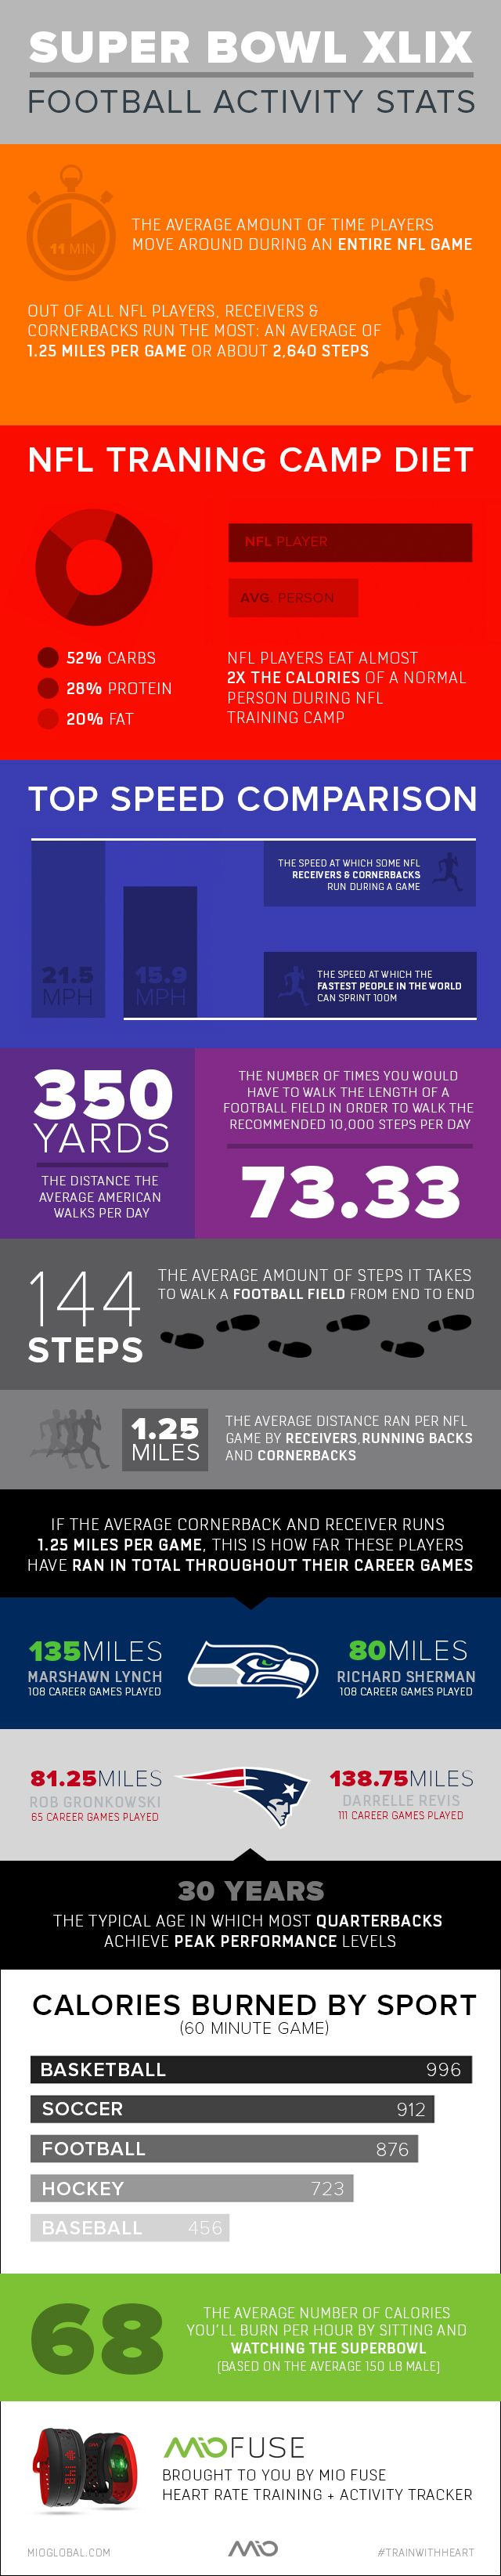 Check out this awesome infographic on the activity & fitness of NFL players! #fitness #NFL #stats #infographic #SB49 #Patriots #Seahawks #SeattleSeahawks #NewEnglandPatriots #Football #stats #sports #sportslovers #activitytracker #MioFUSE #health #fitness #trainwithheart #heartratemonitor #pedometer #creativeinfographic #mioglobal